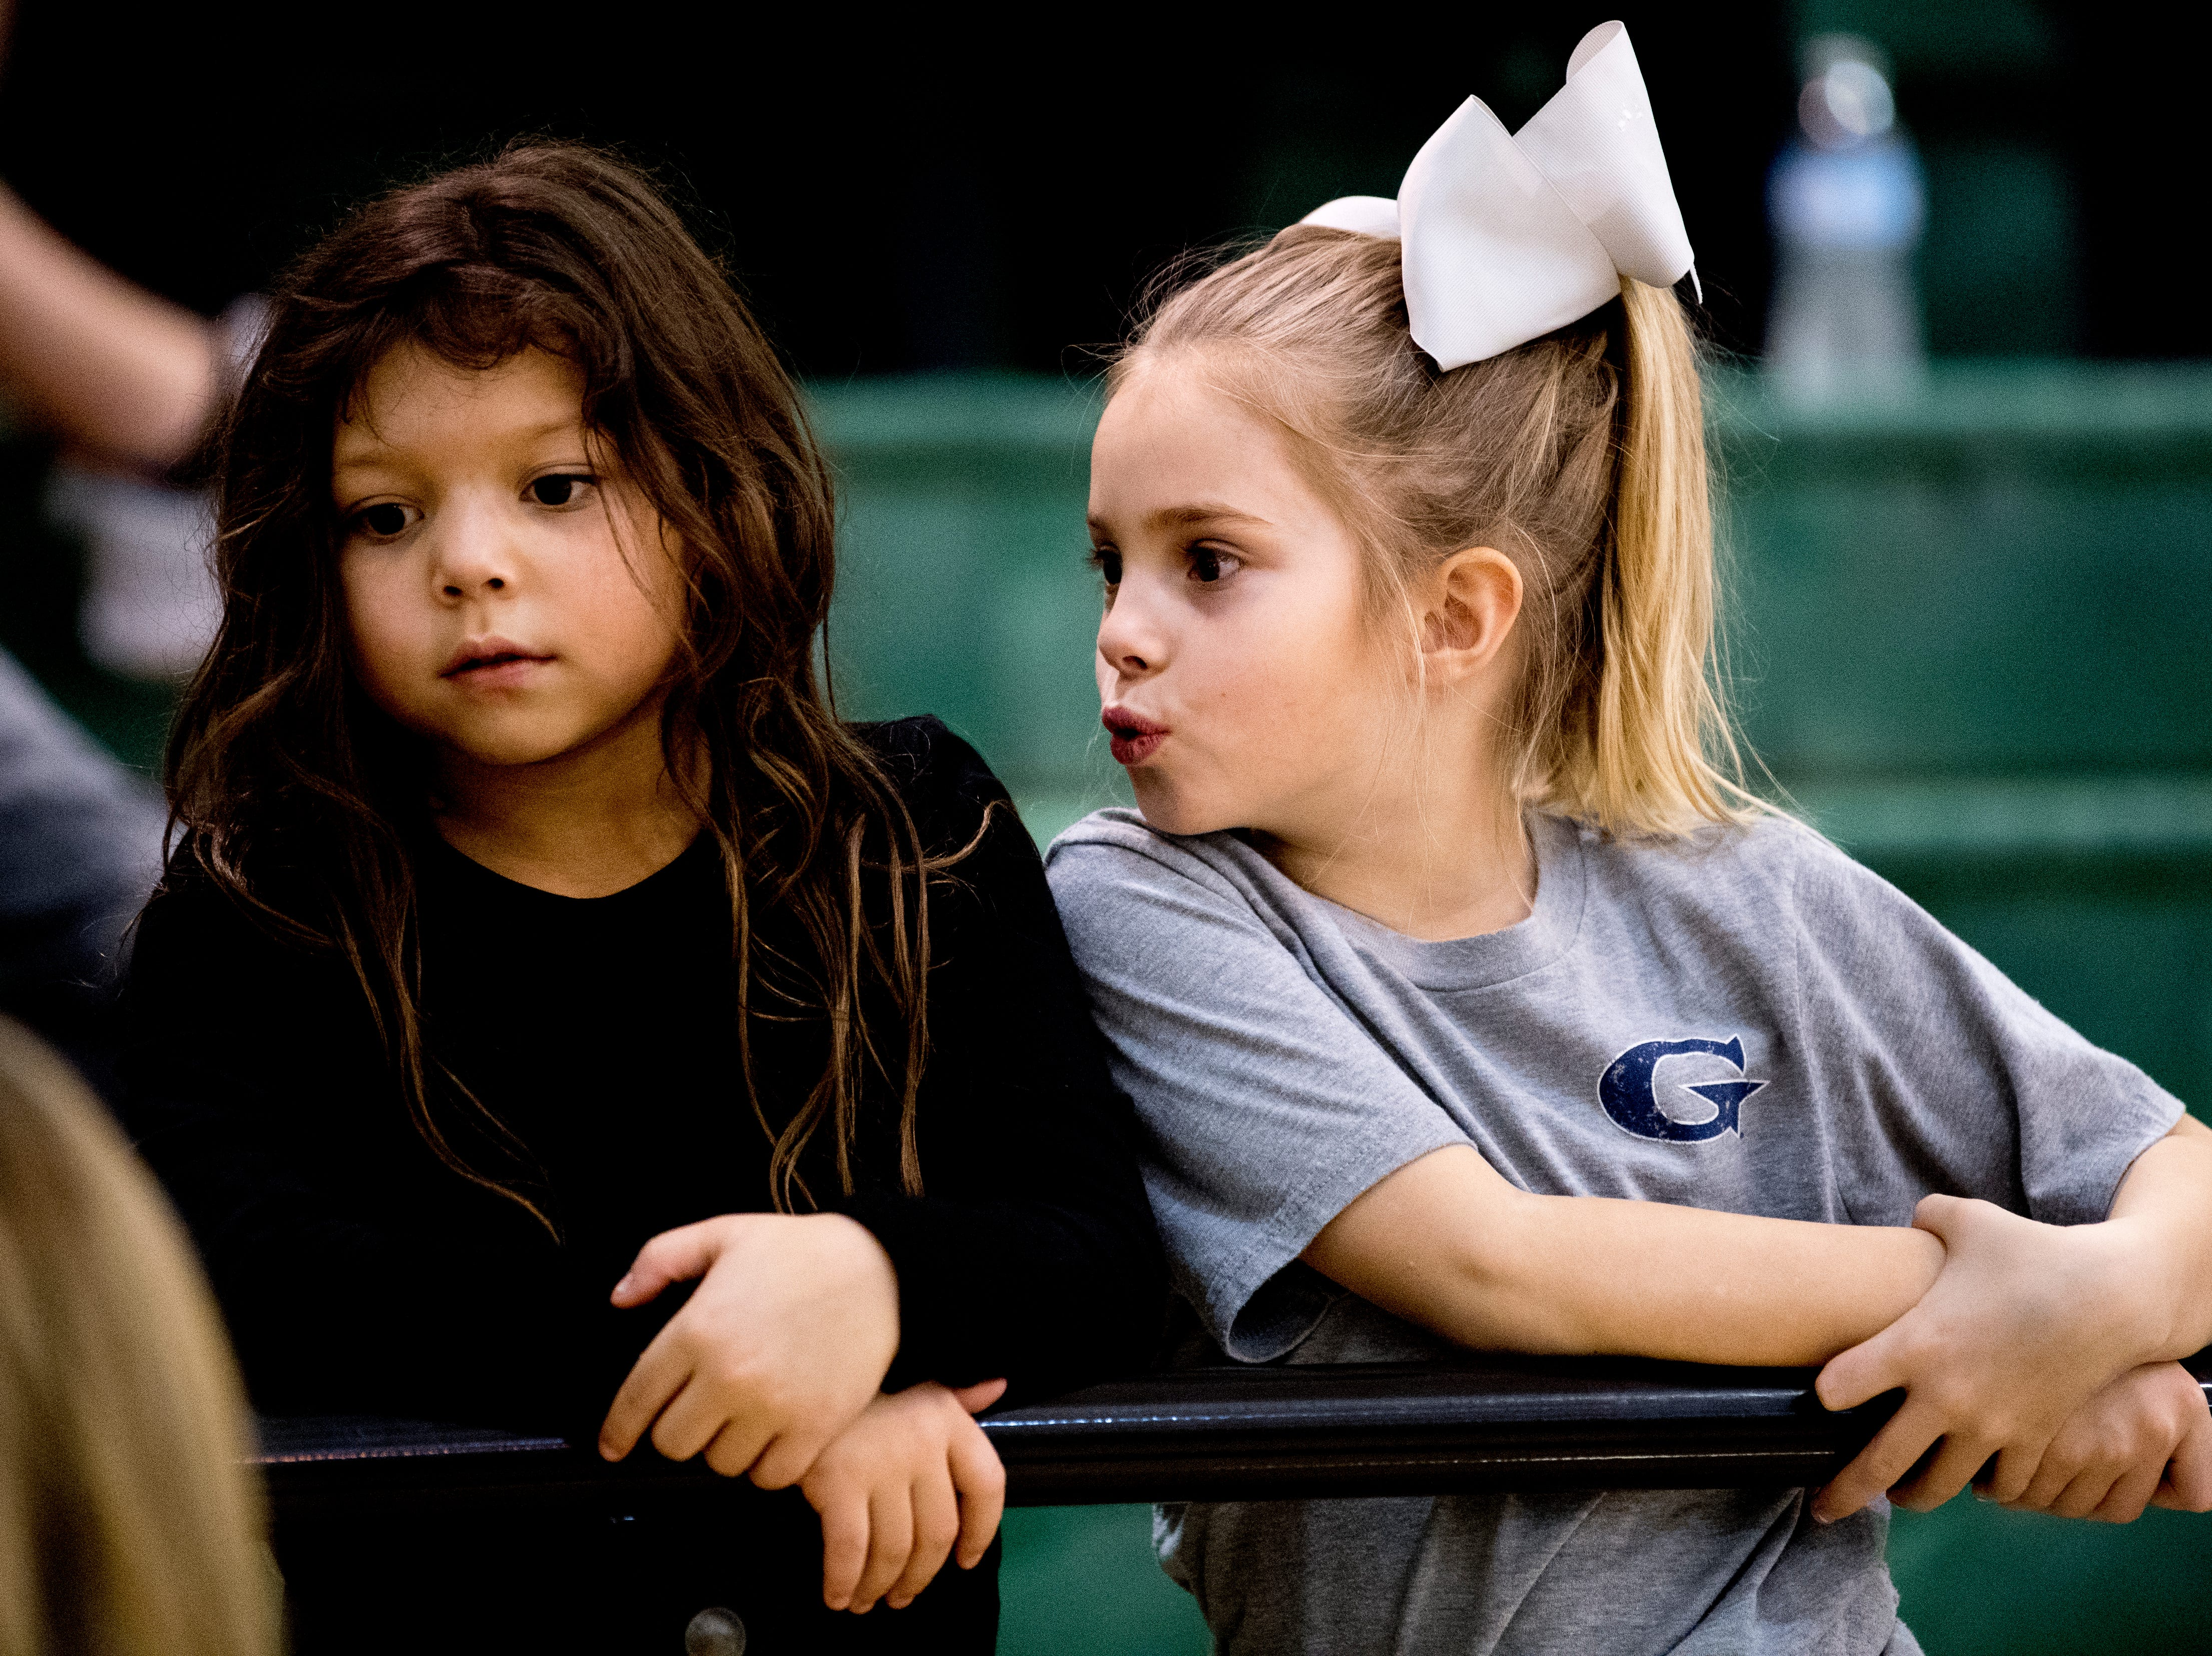 Kids in the stands watch from the sidelines during a semifinal game tournament at Webb School of Knoxville in Knoxville, Tennessee on Friday, February 15, 2019.